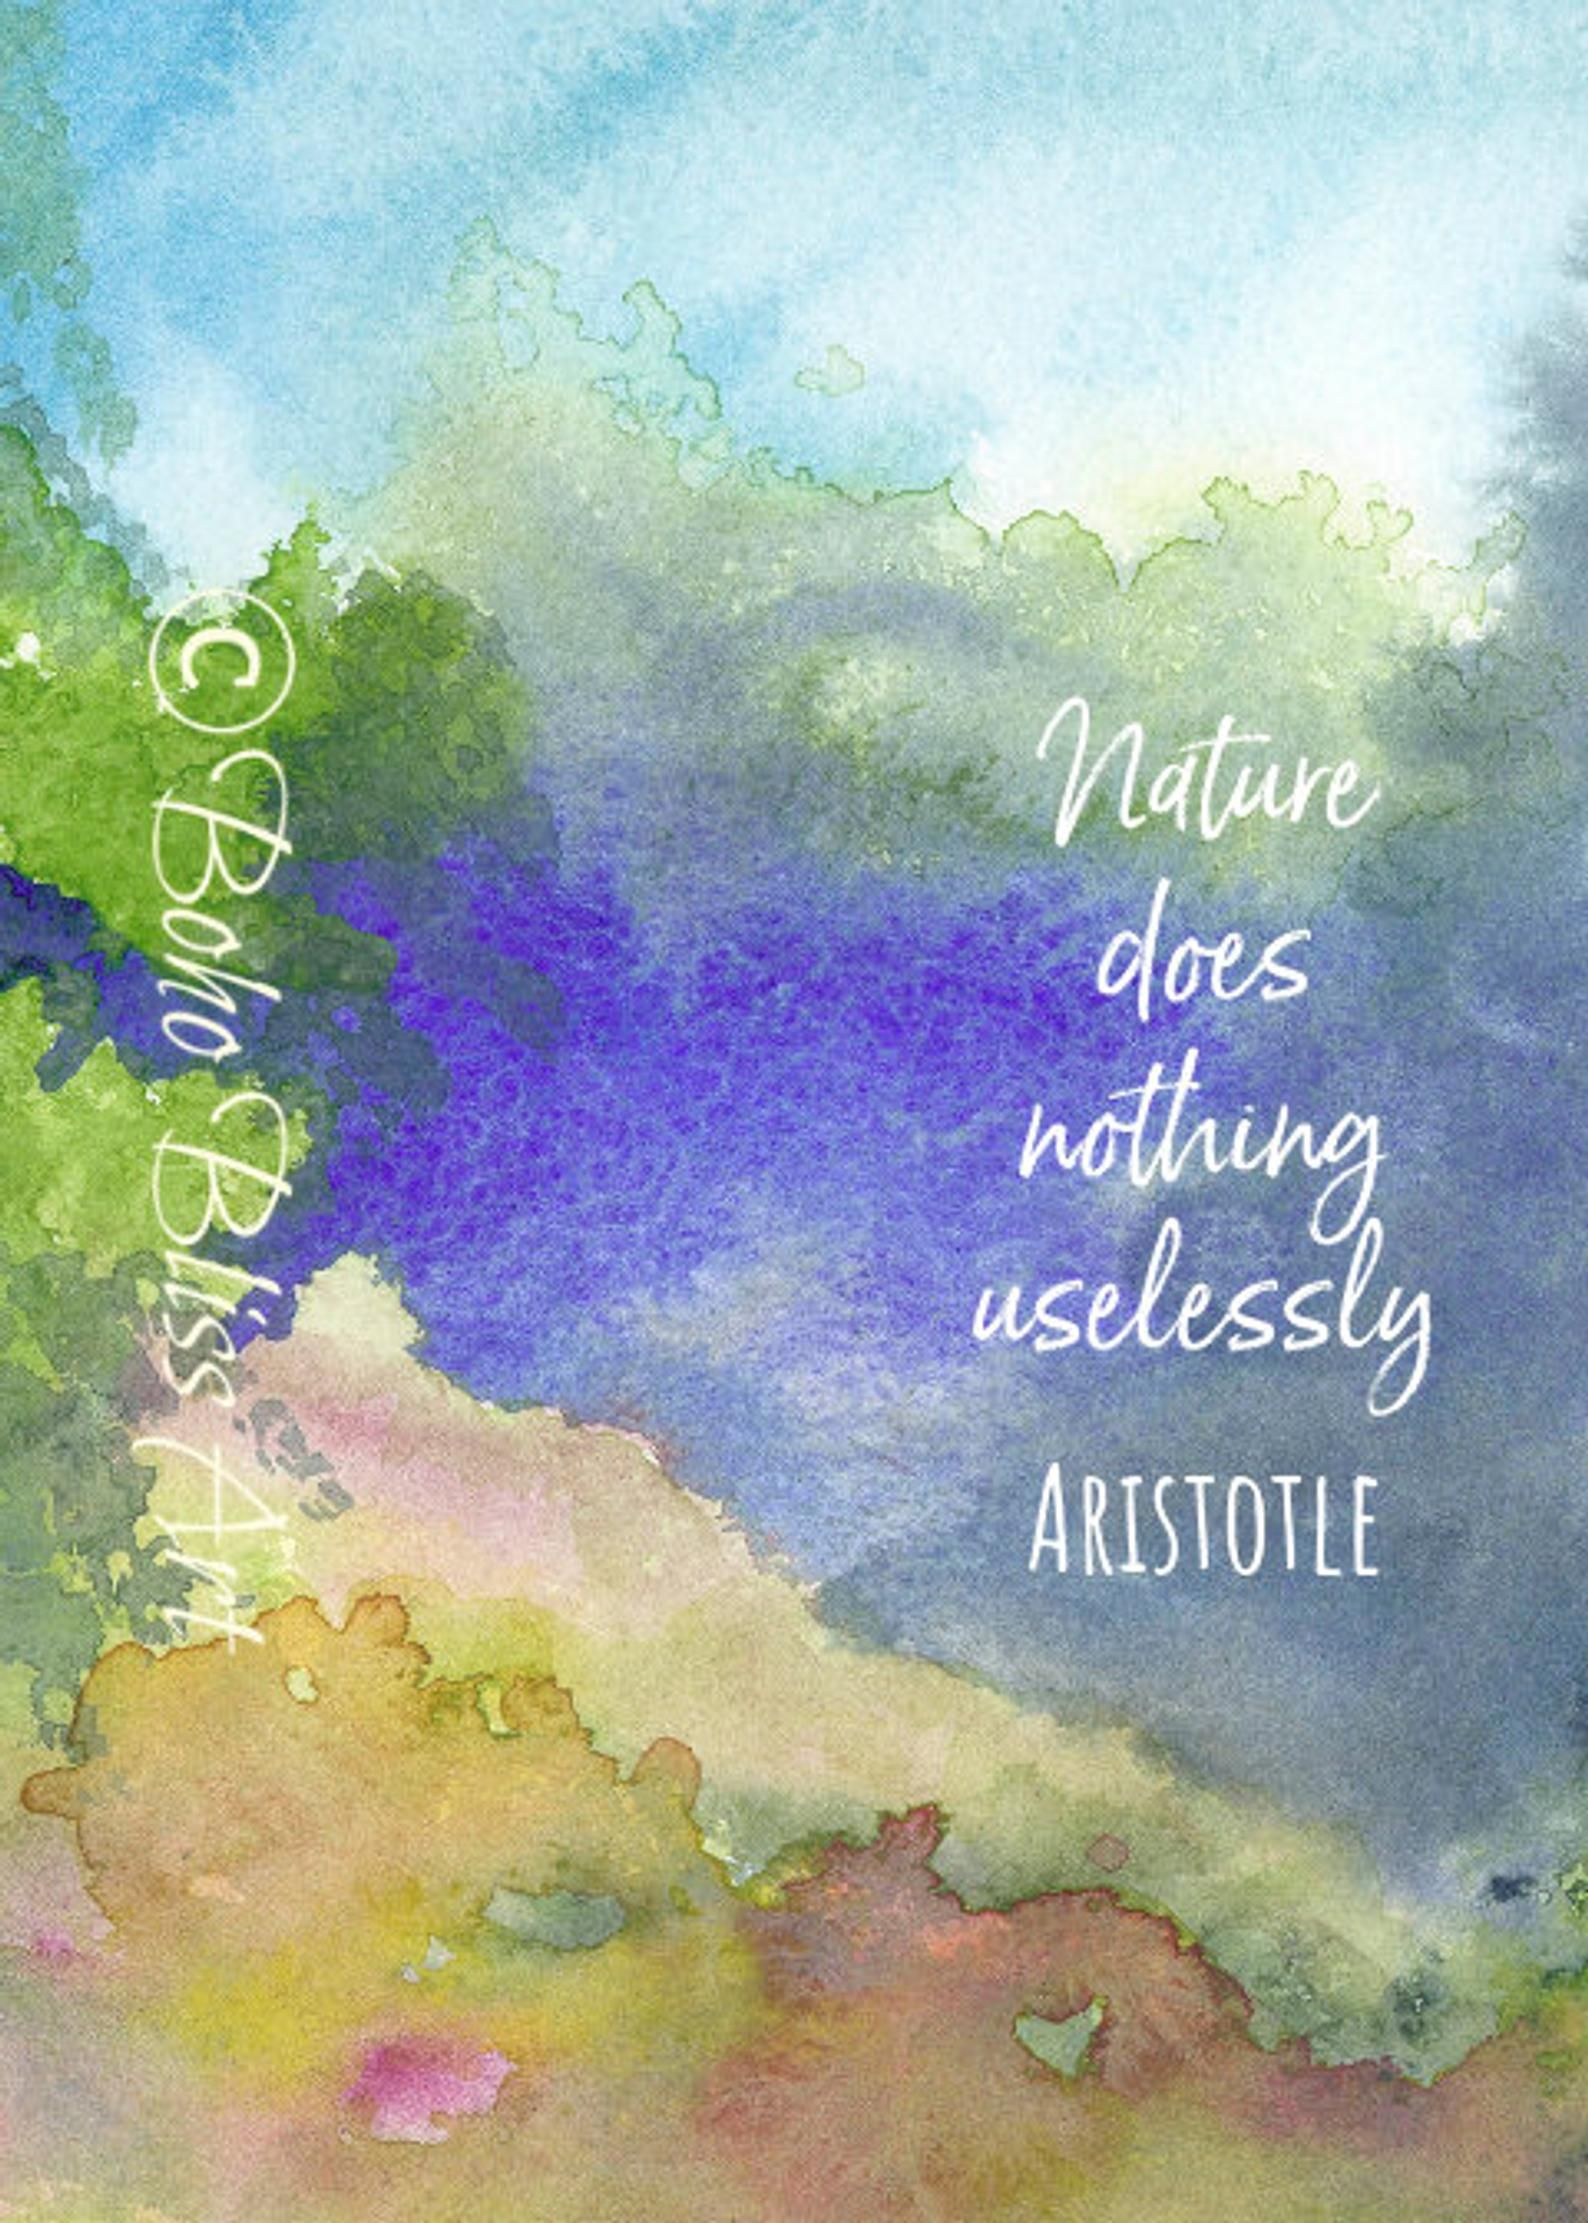 Aristotle Quote There Is Something Of The Marvelous In All Etsy Aristotle Quotes Nature Quotes Happy Monday Quotes